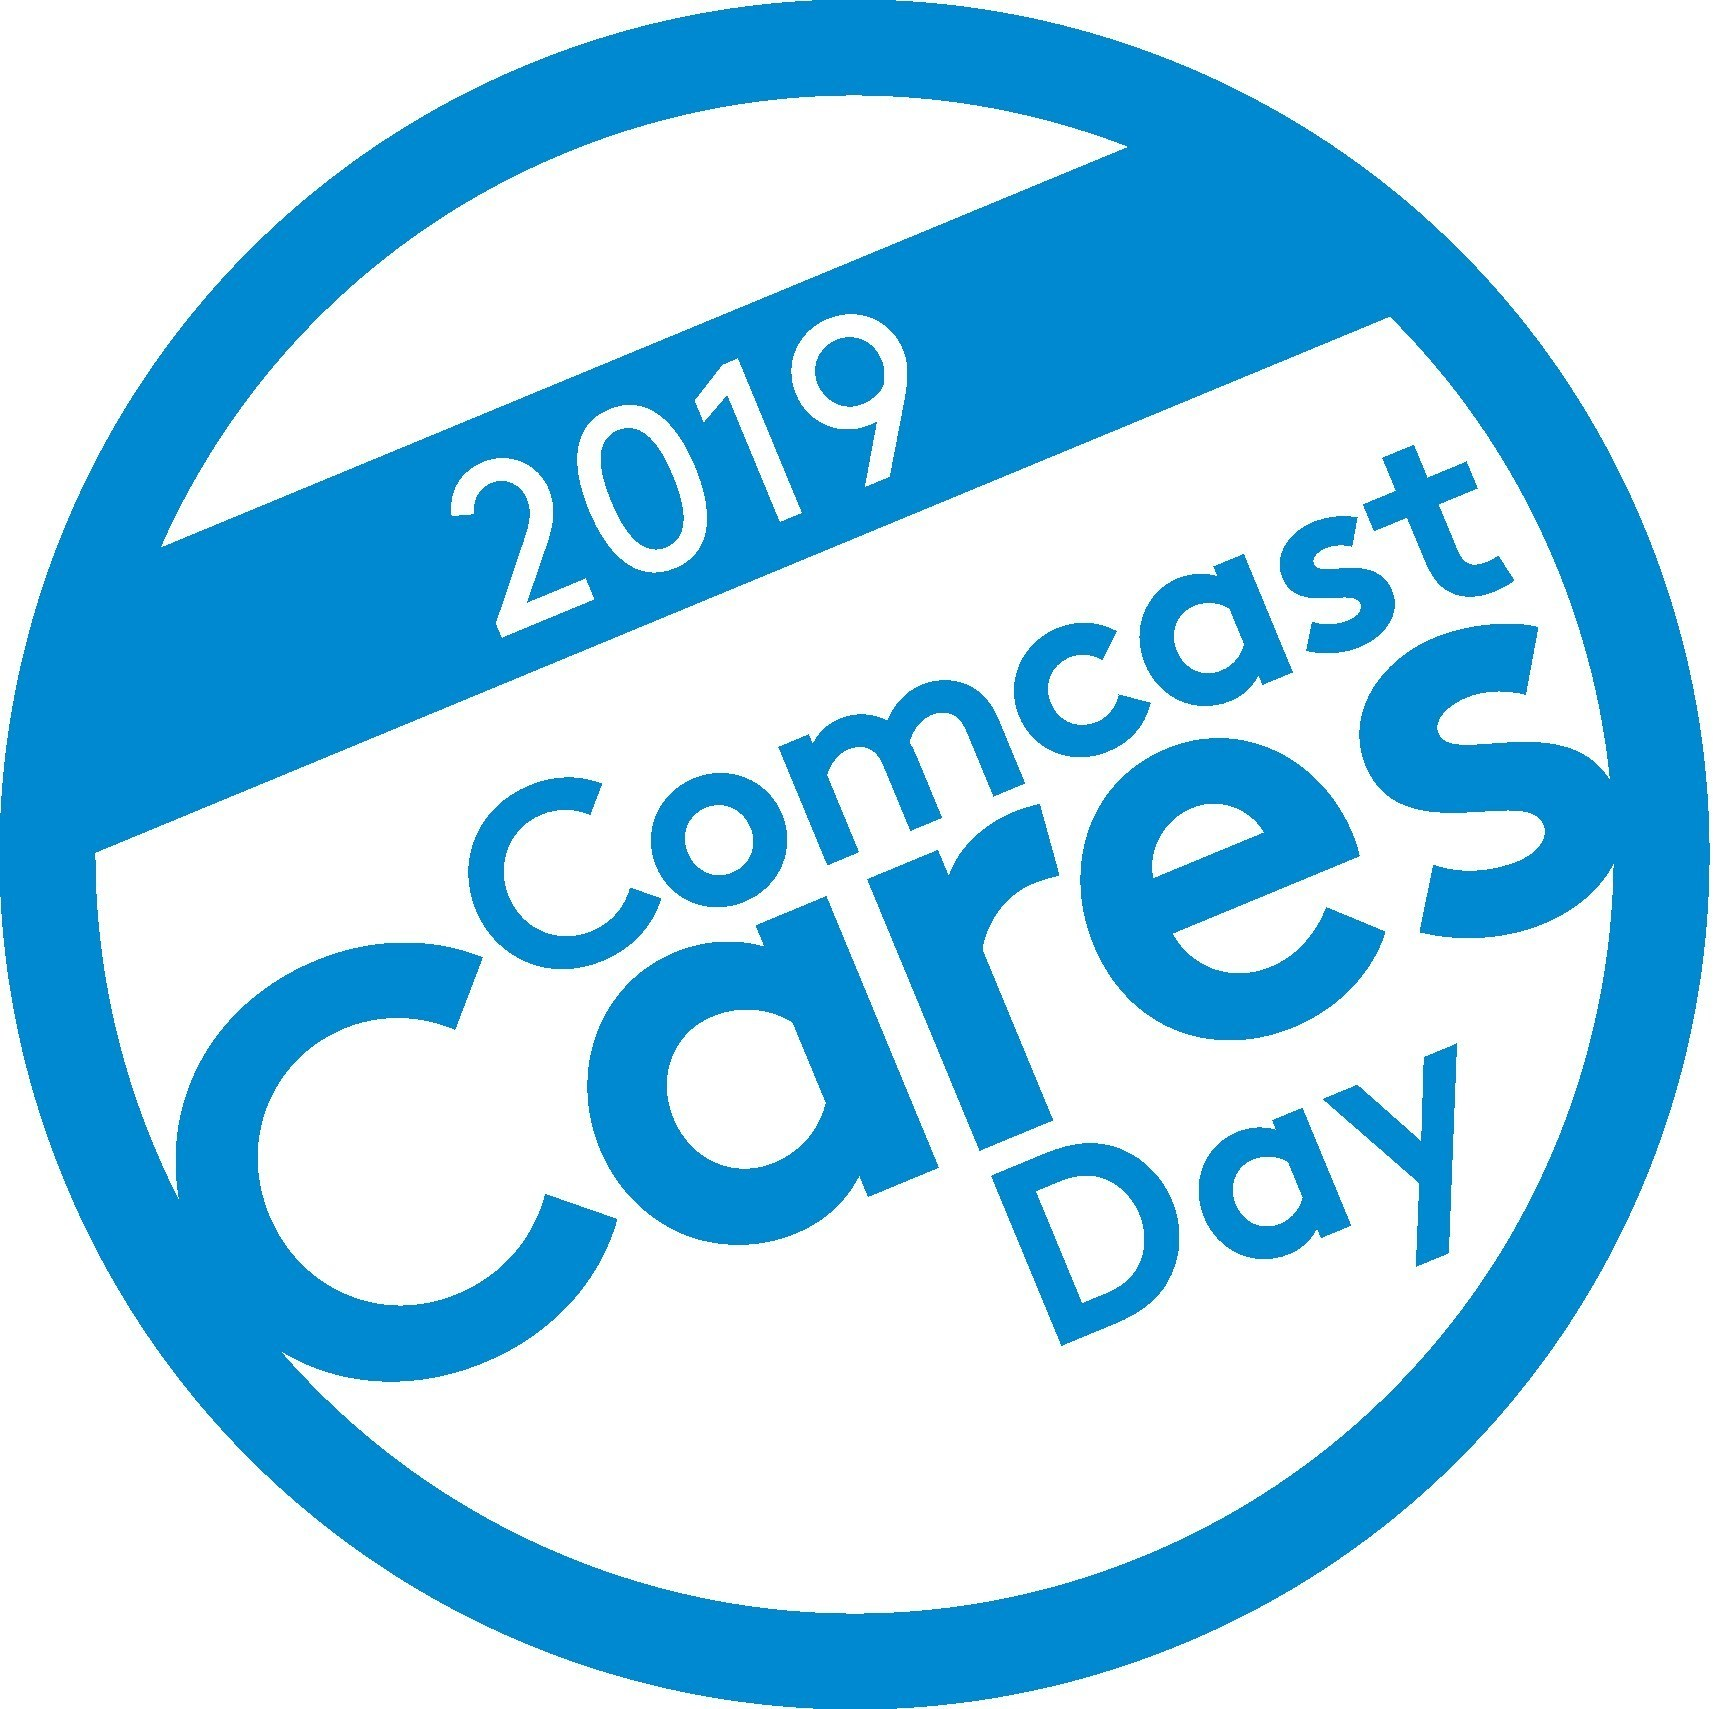 """West Palm Beach In 2019: Thousands Of Comcast Cares Day Volunteers """"Make Change"""